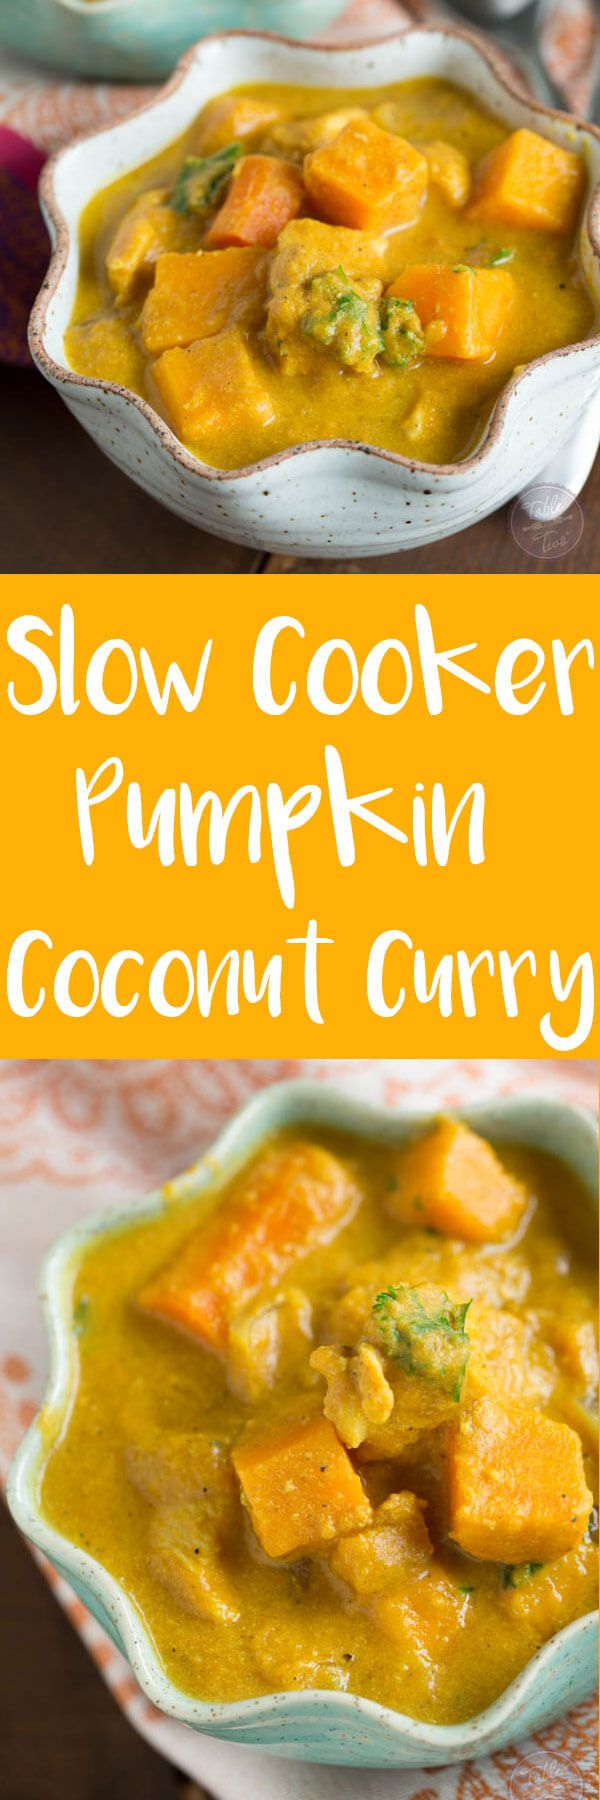 Whole30 Slow Cooker Pumpkin Coconut Curry Recipe Whole30 Chicken and Pork Crock Pot Recipes